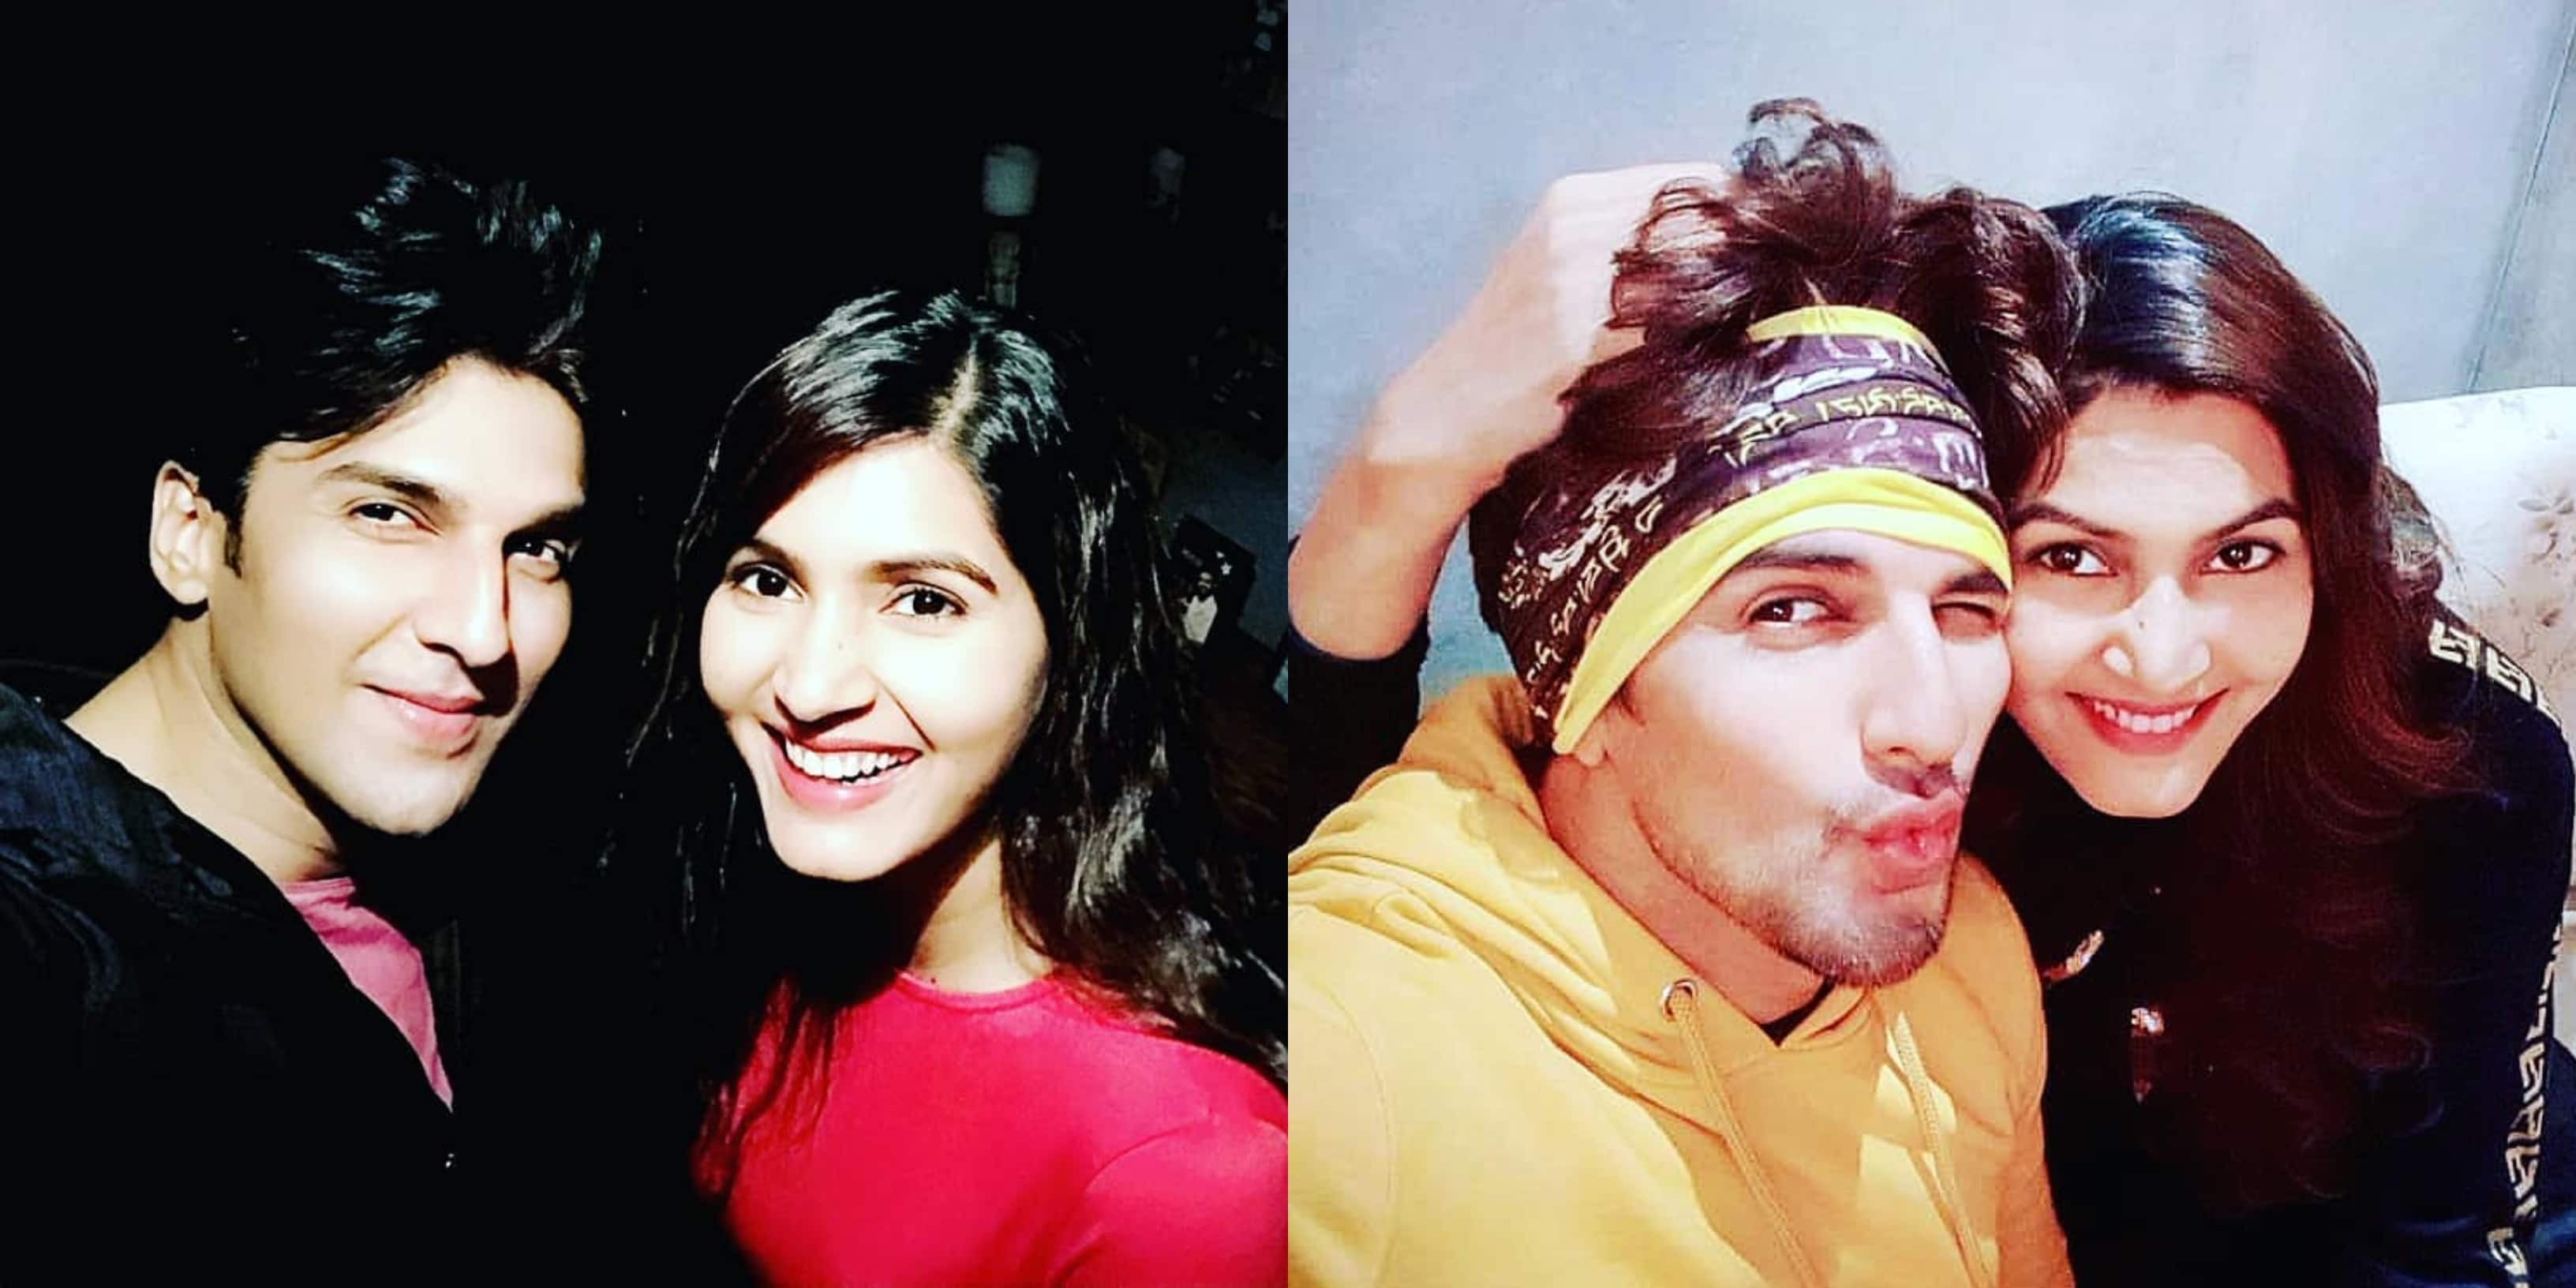 Manish Raisinghan Opens Up About Link Up Rumors With Sasural Simar Ka Co-Star And BFF Avika Gor